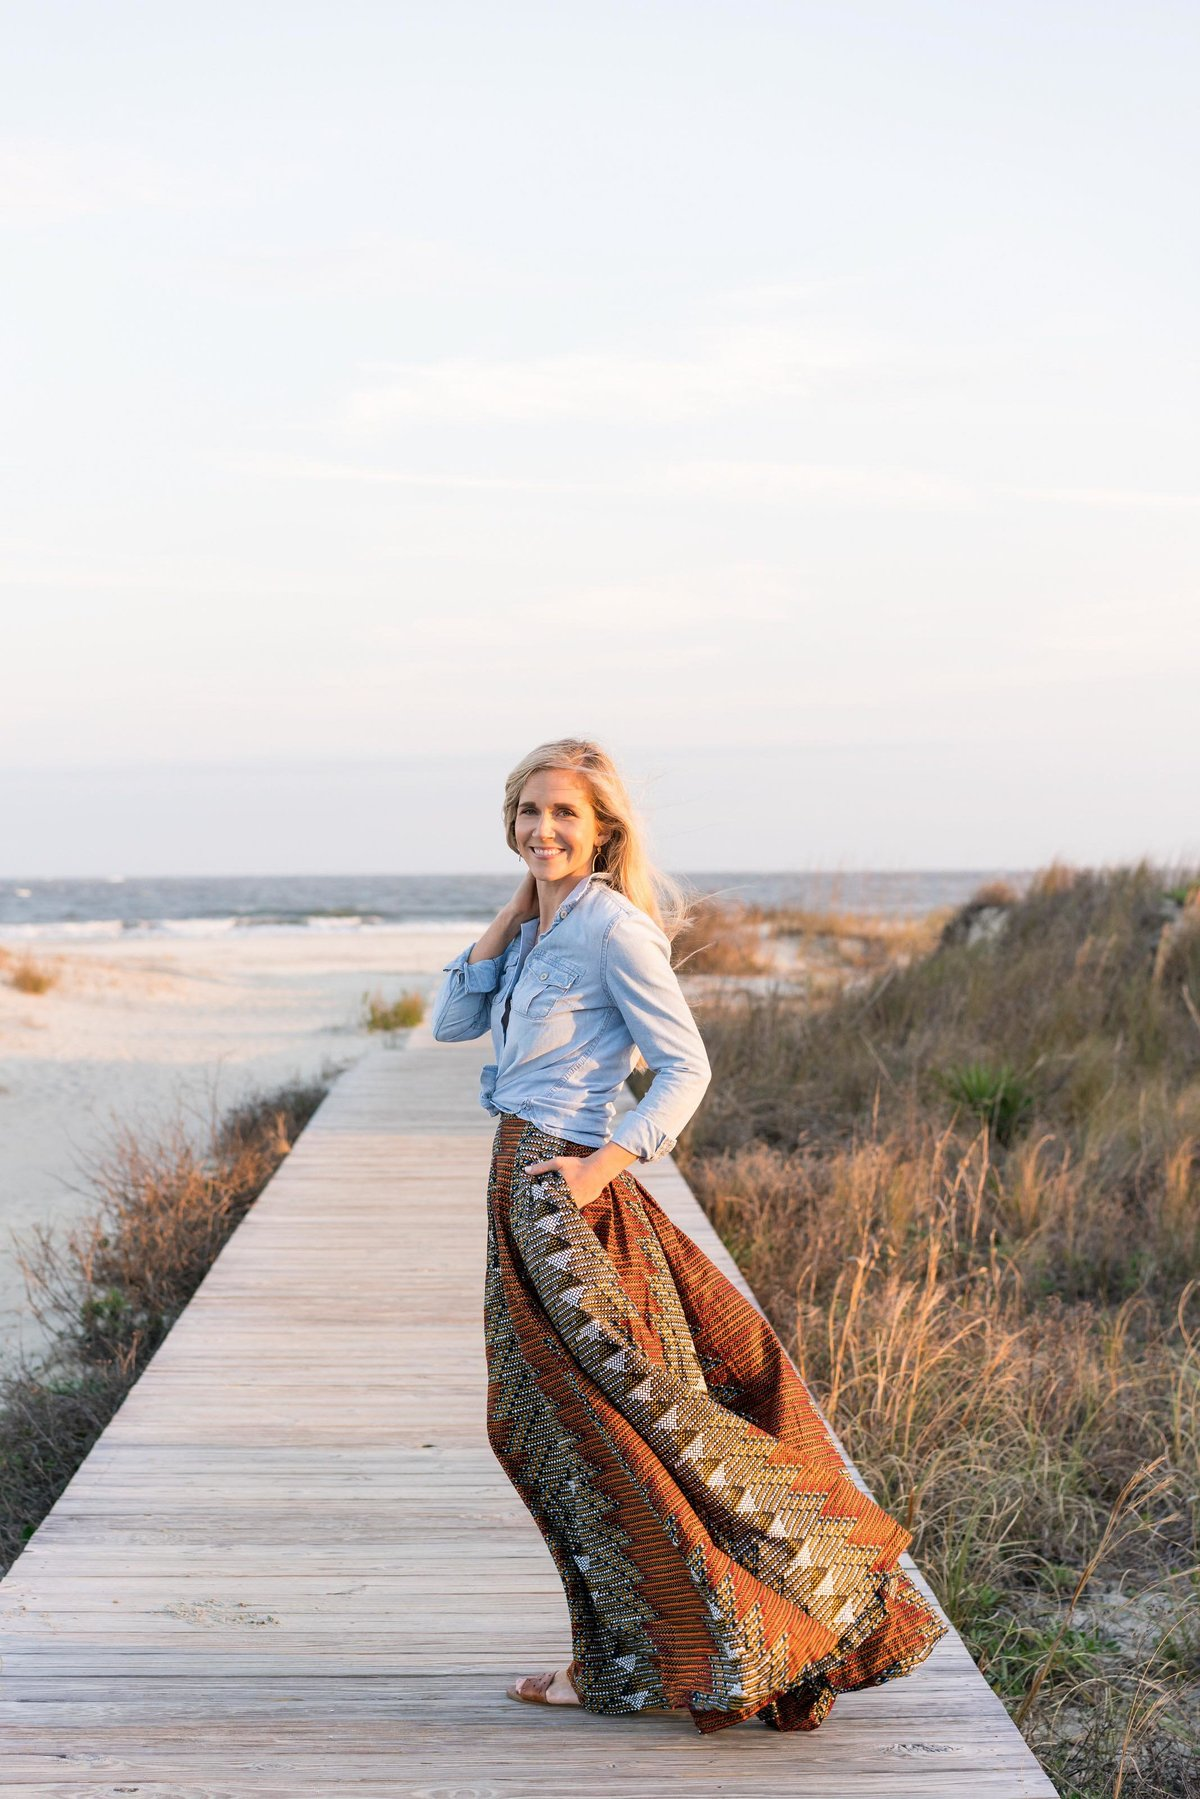 Abby-Murphy-Photo-Portraits-Branding-Lowcountry-Lifestyling-1